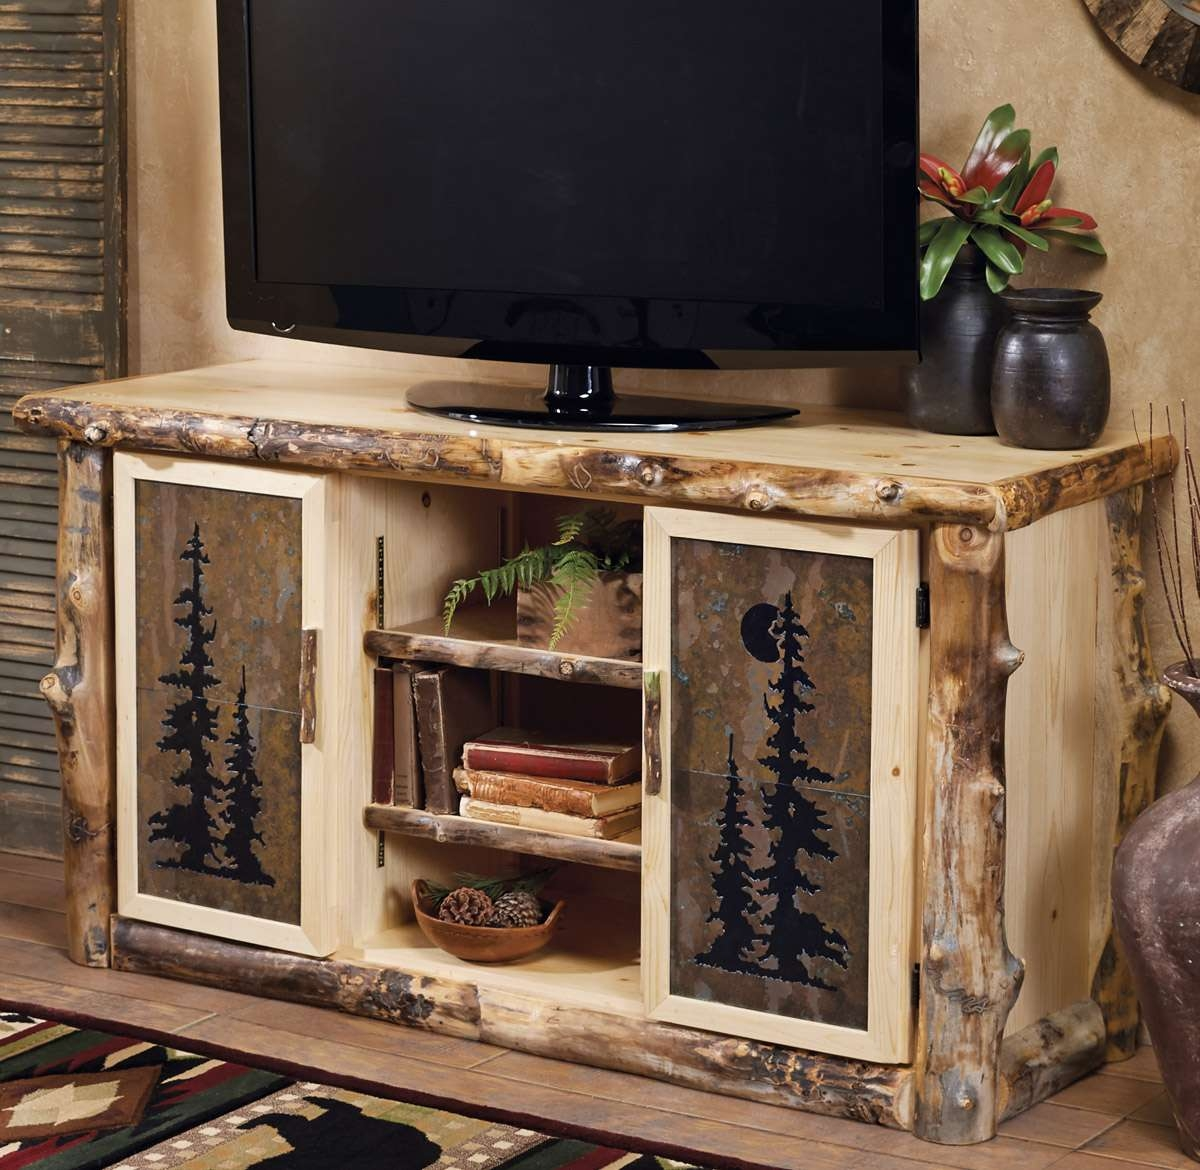 Inspiring Small Tv Stand Together With Small Rustic Tv Stand As With Rustic Tv Stands (View 7 of 20)